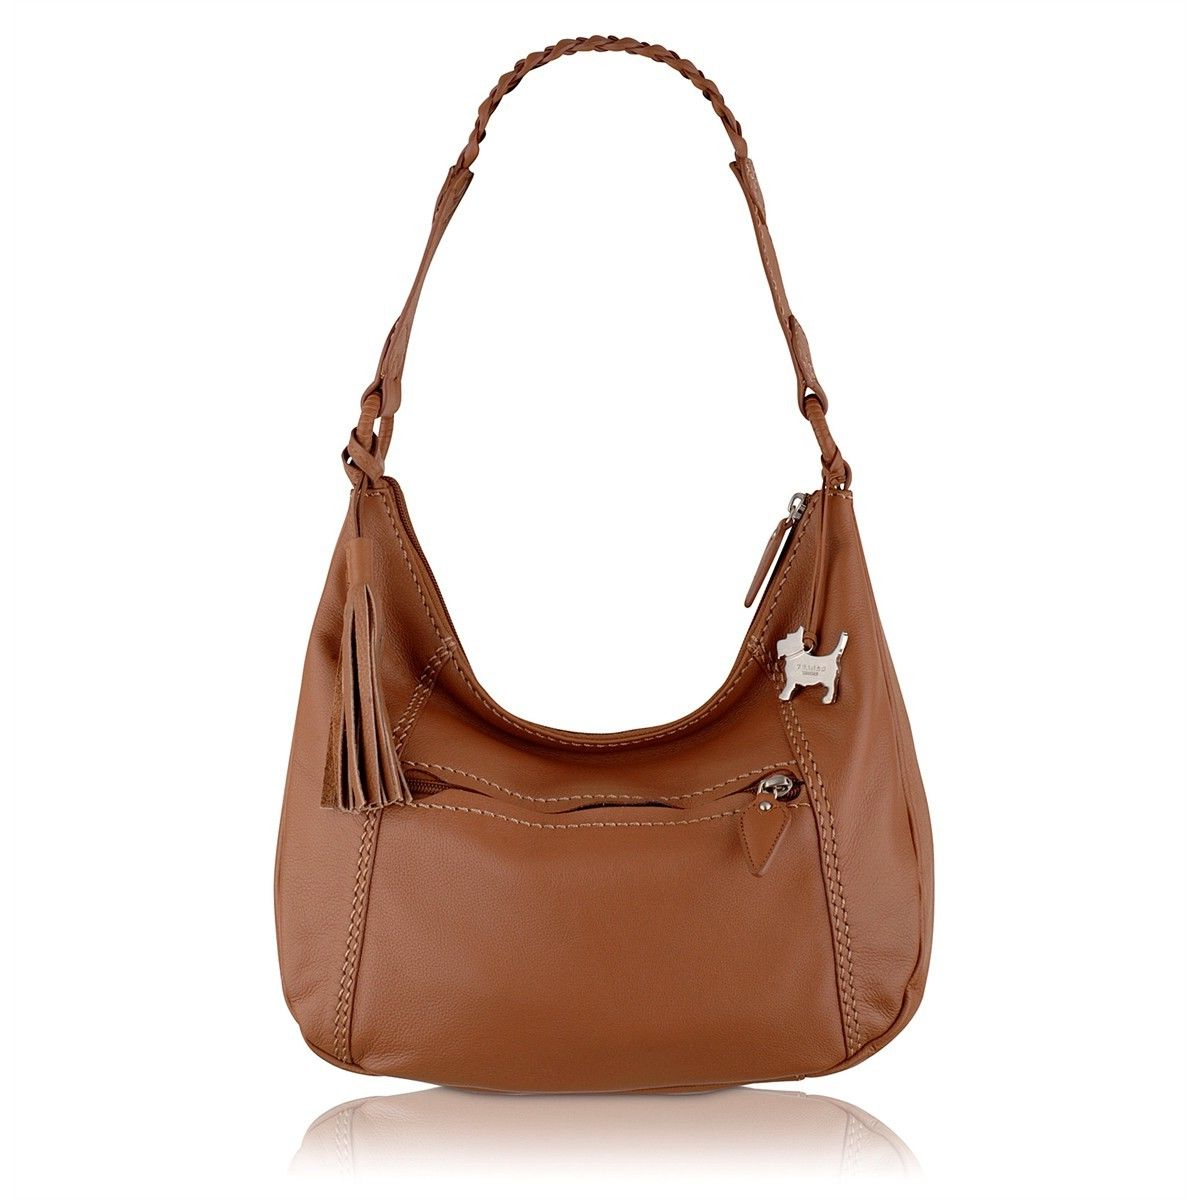 brown leather hobo bag fossil hobo bag hobo handbag